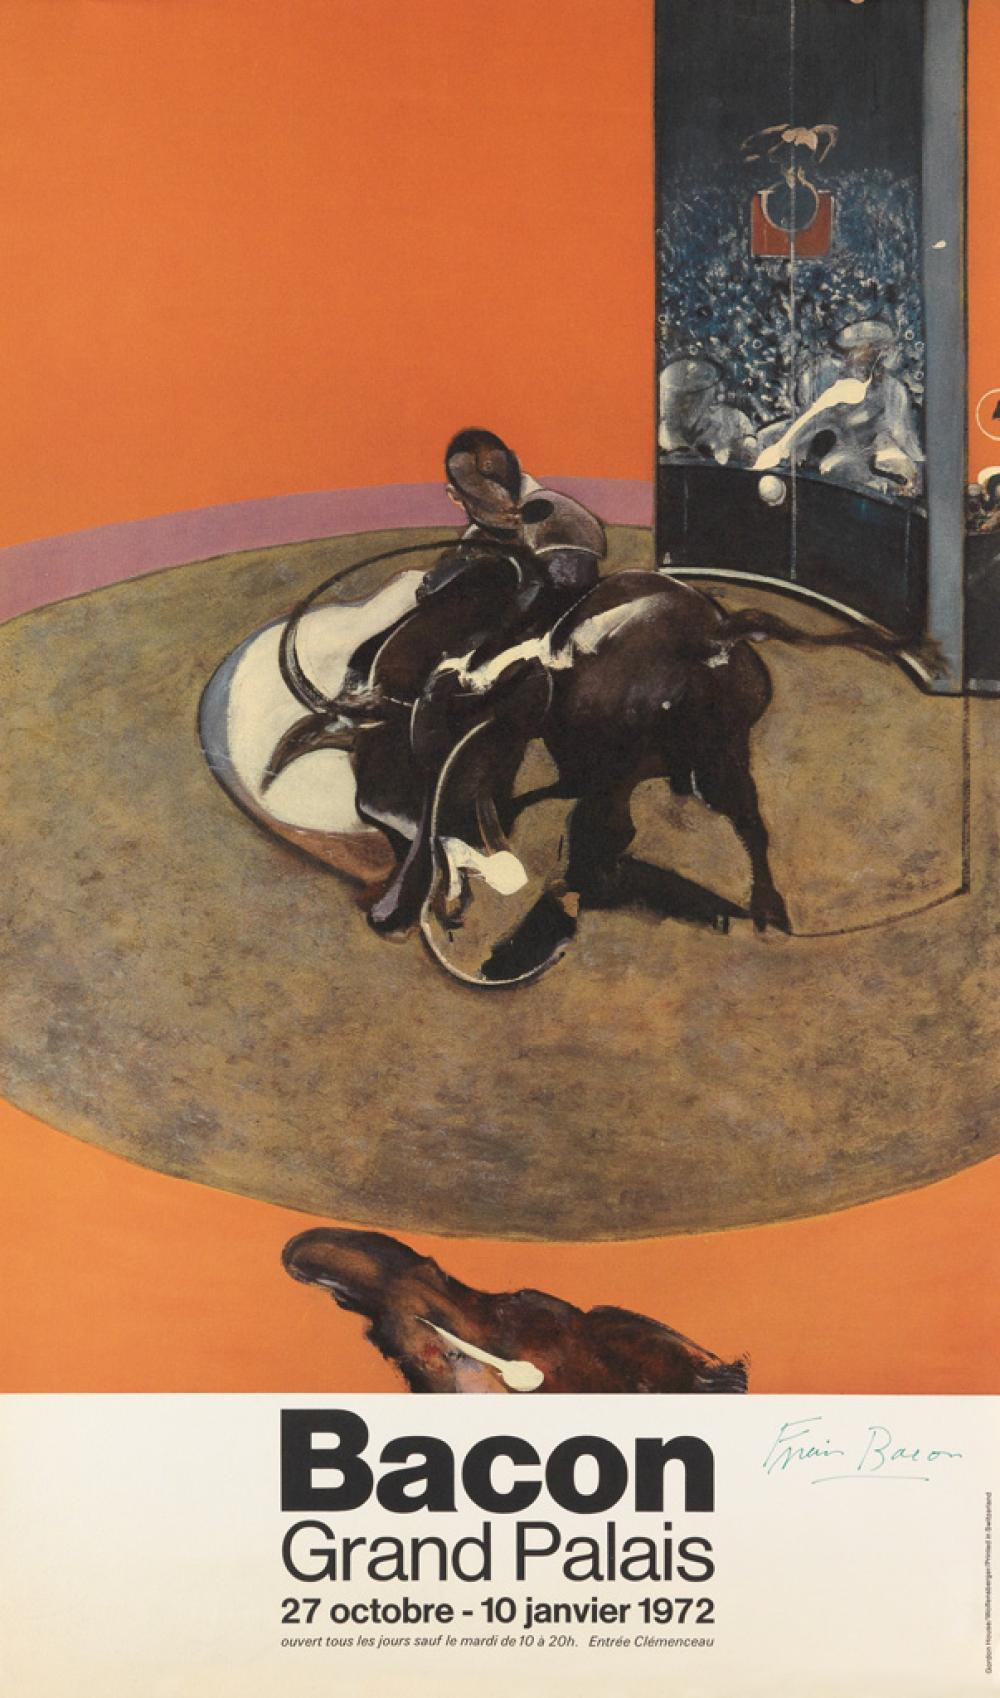 FRANCIS BACON (after) Bacon Grand Palais Poster